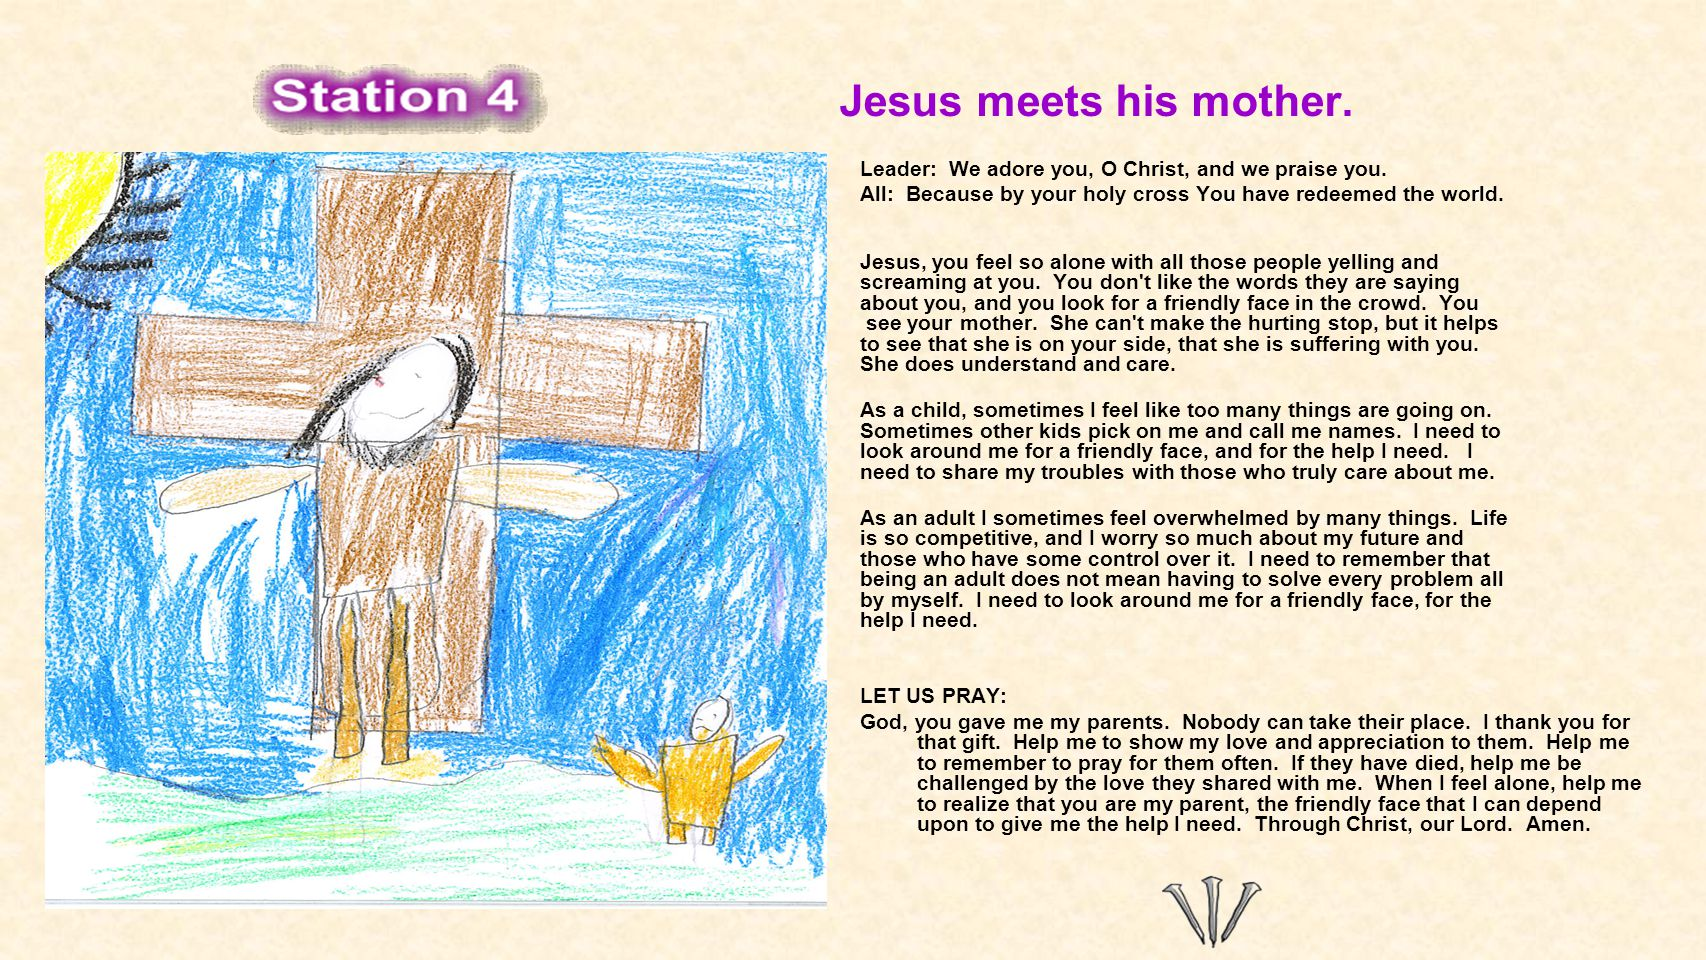 Jesus meets his mother. Leader: We adore you, O Christ, and we praise you. All: Because by your holy cross You have redeemed the world. Jesus, you fee